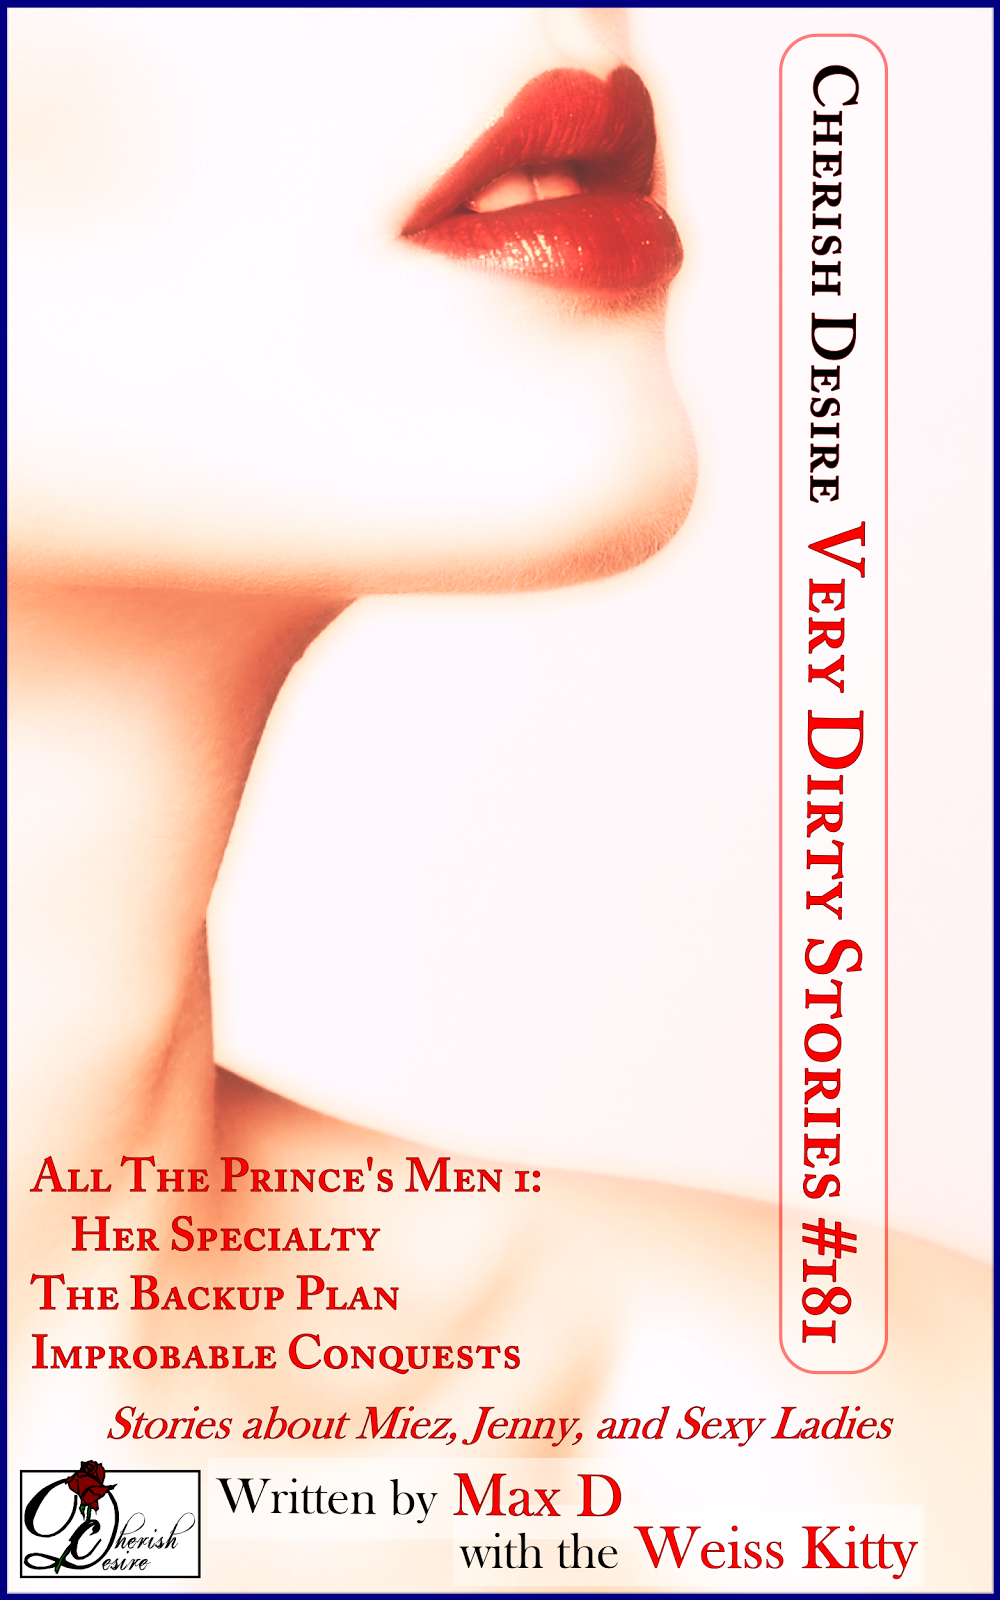 Cherish Desire: Very Dirty Stories #181, Max D, Weiss Kitty, erotica